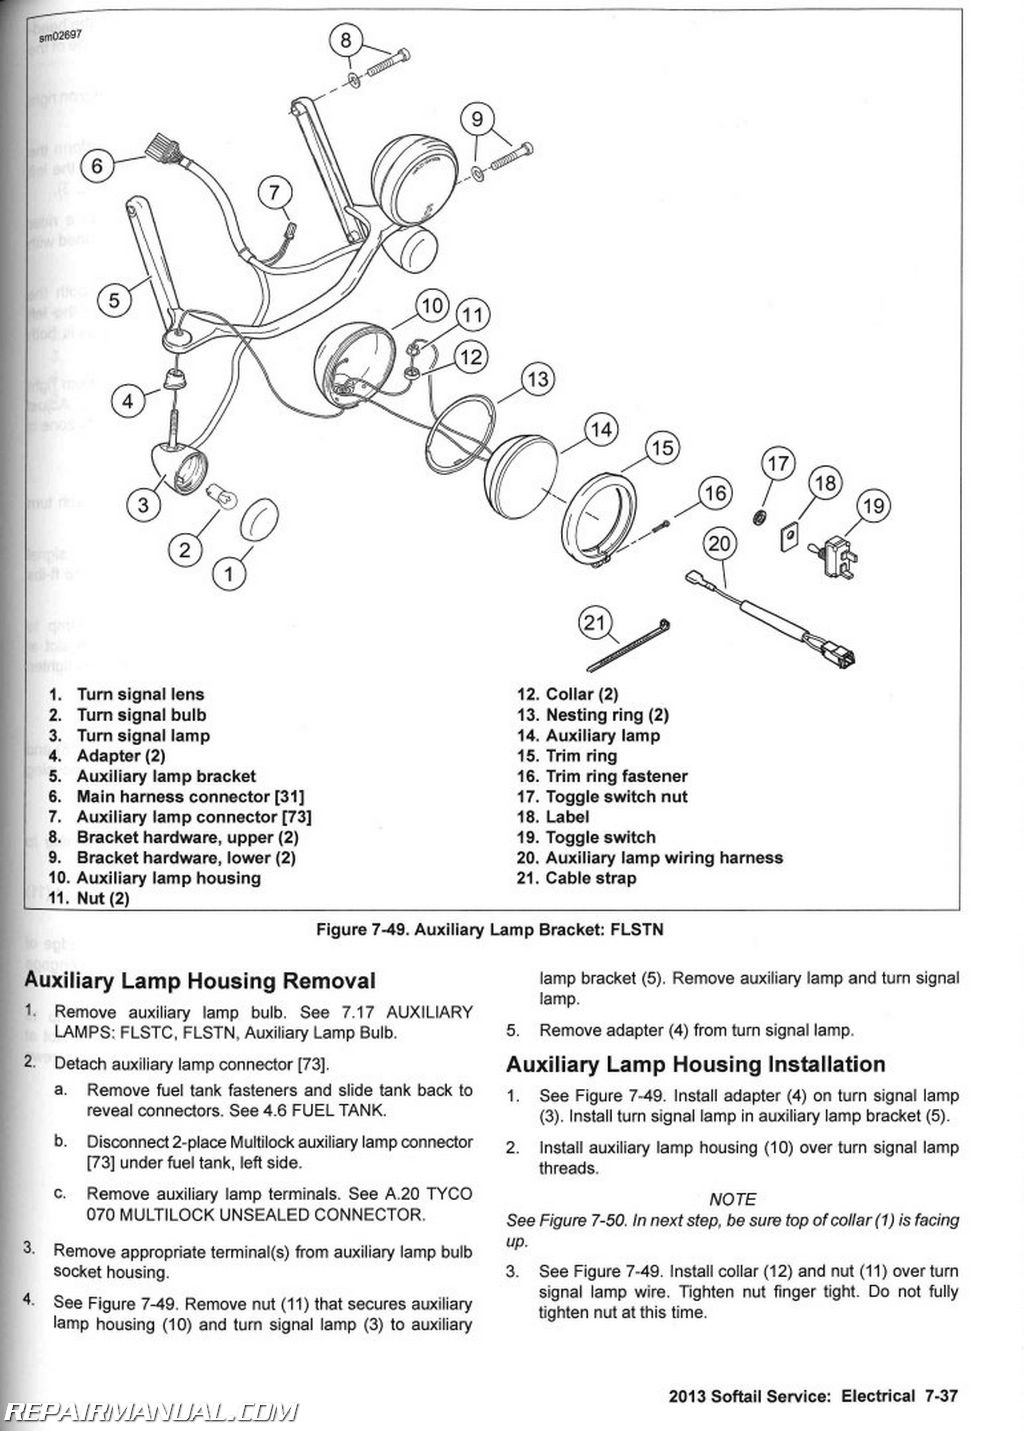 Harley Turn Signal Wiring Diagram 2014 | New Wiring ... on